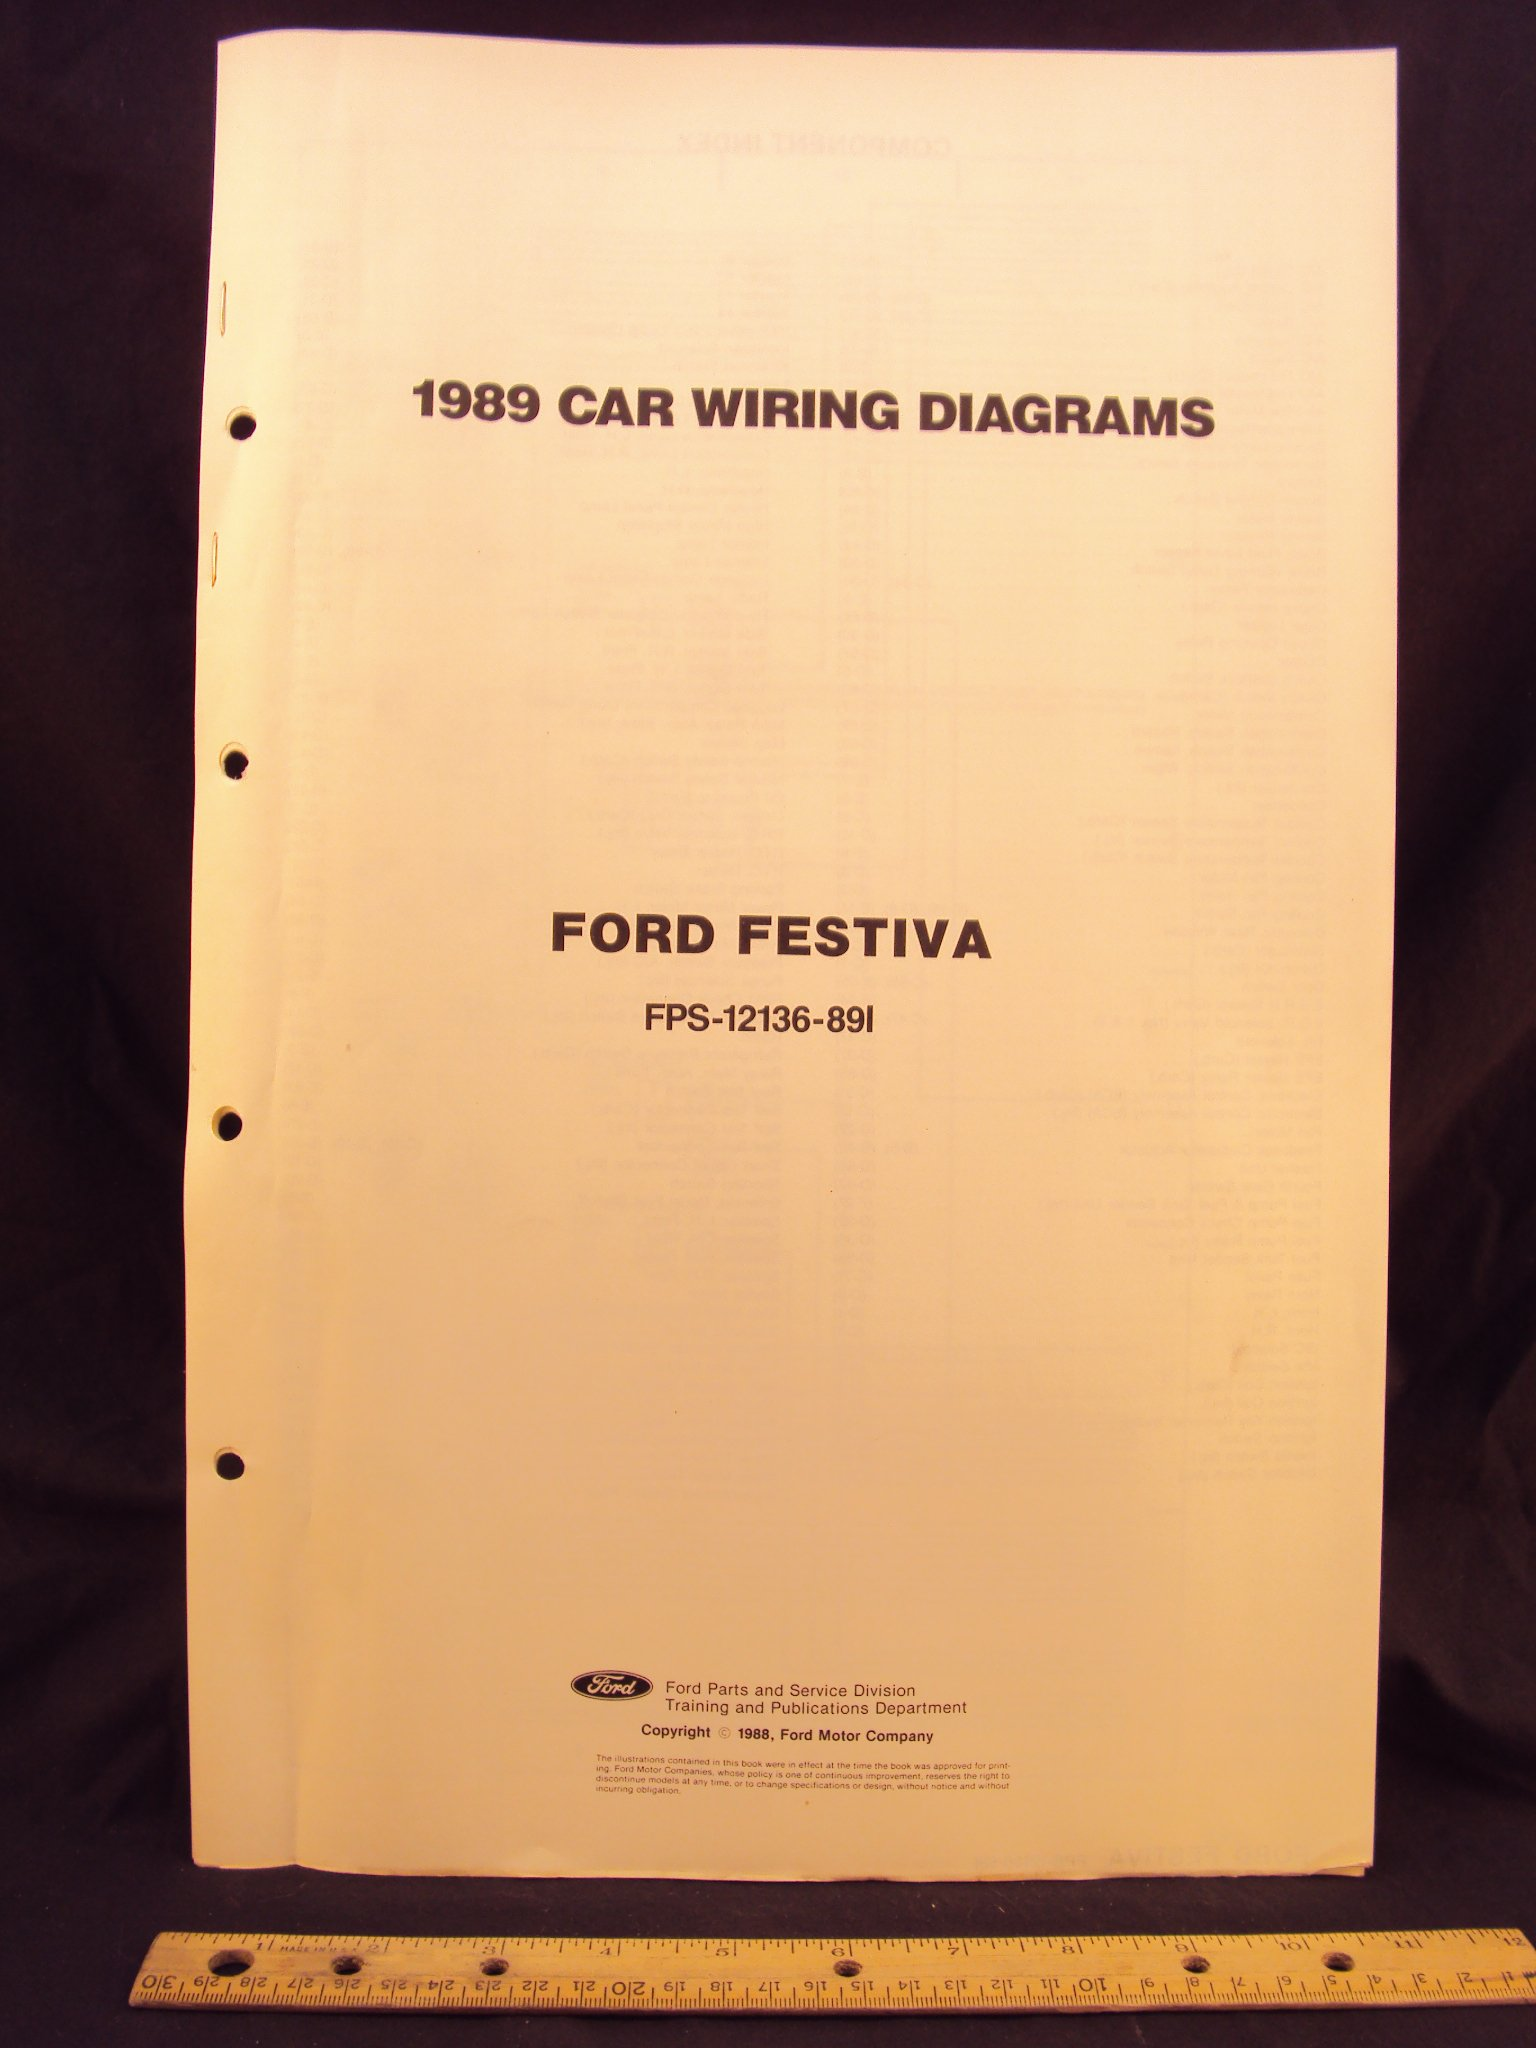 1989 ford festiva electrical wiring diagrams schematics ford rh amazon com 1993 Ford Festiva Wiring-Diagram 1993 Ford Festiva Wiring-Diagram